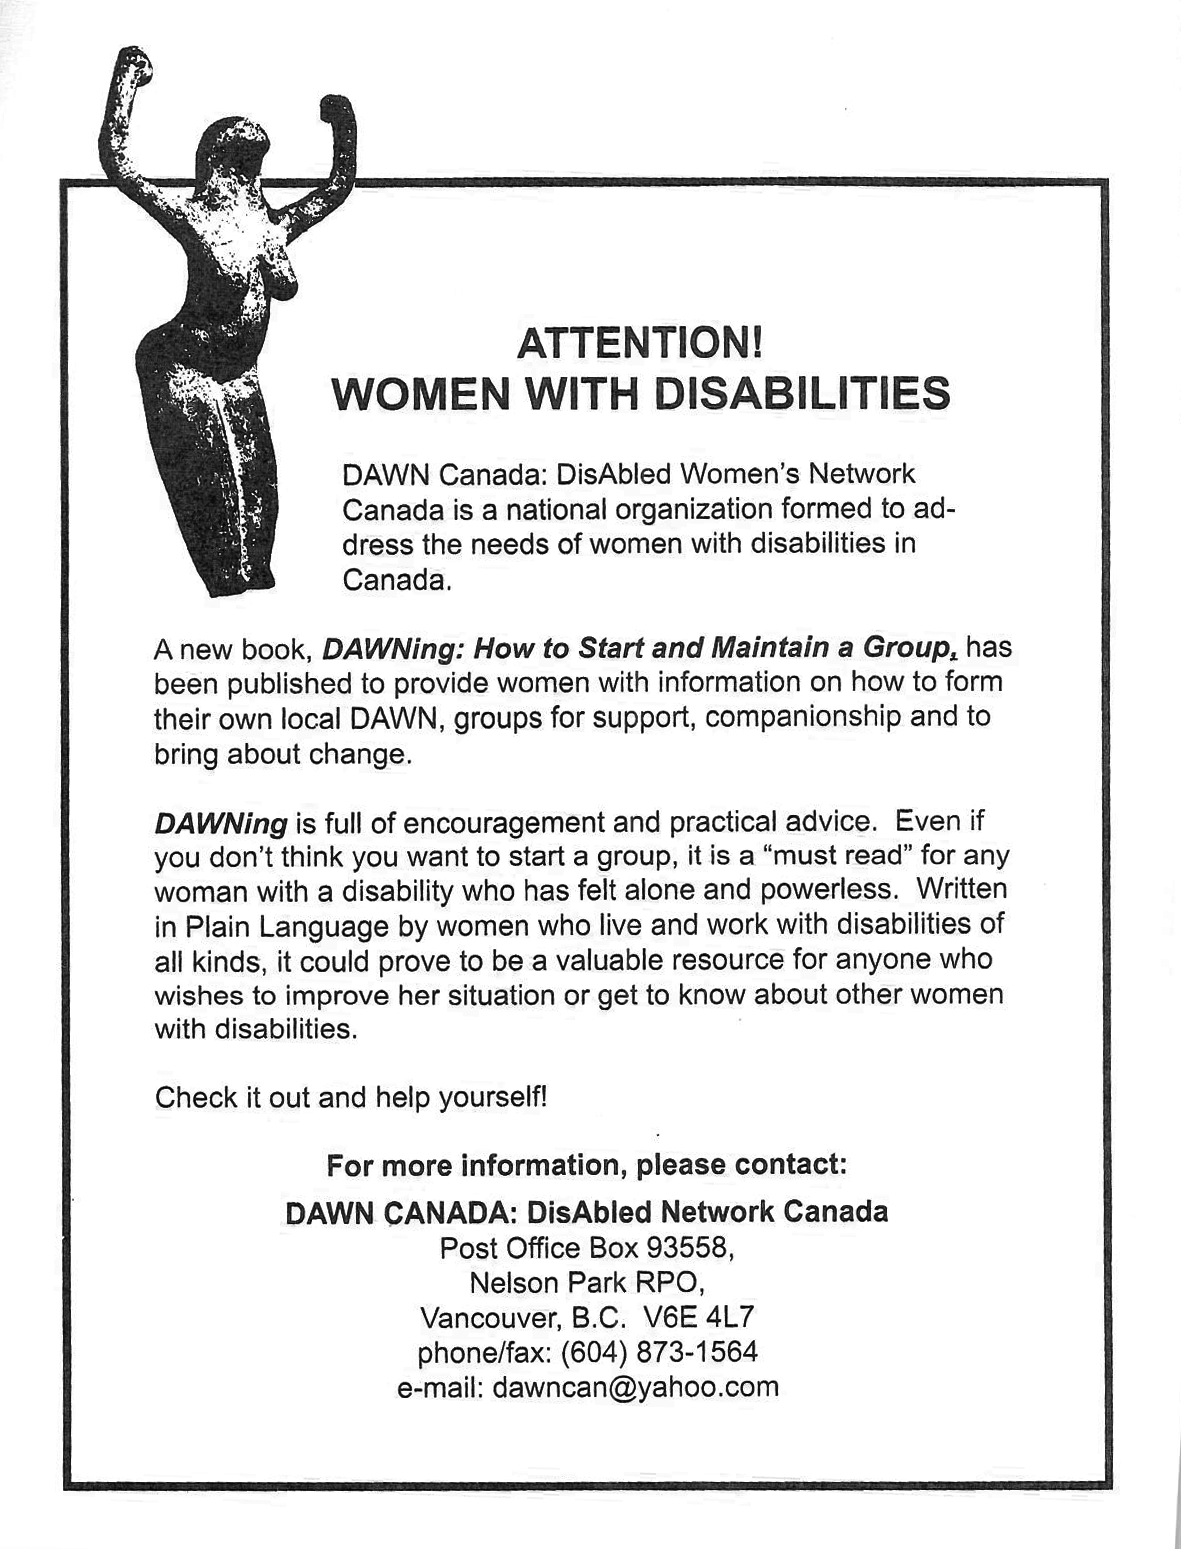 Scan of a flyer that contains the quoted text above